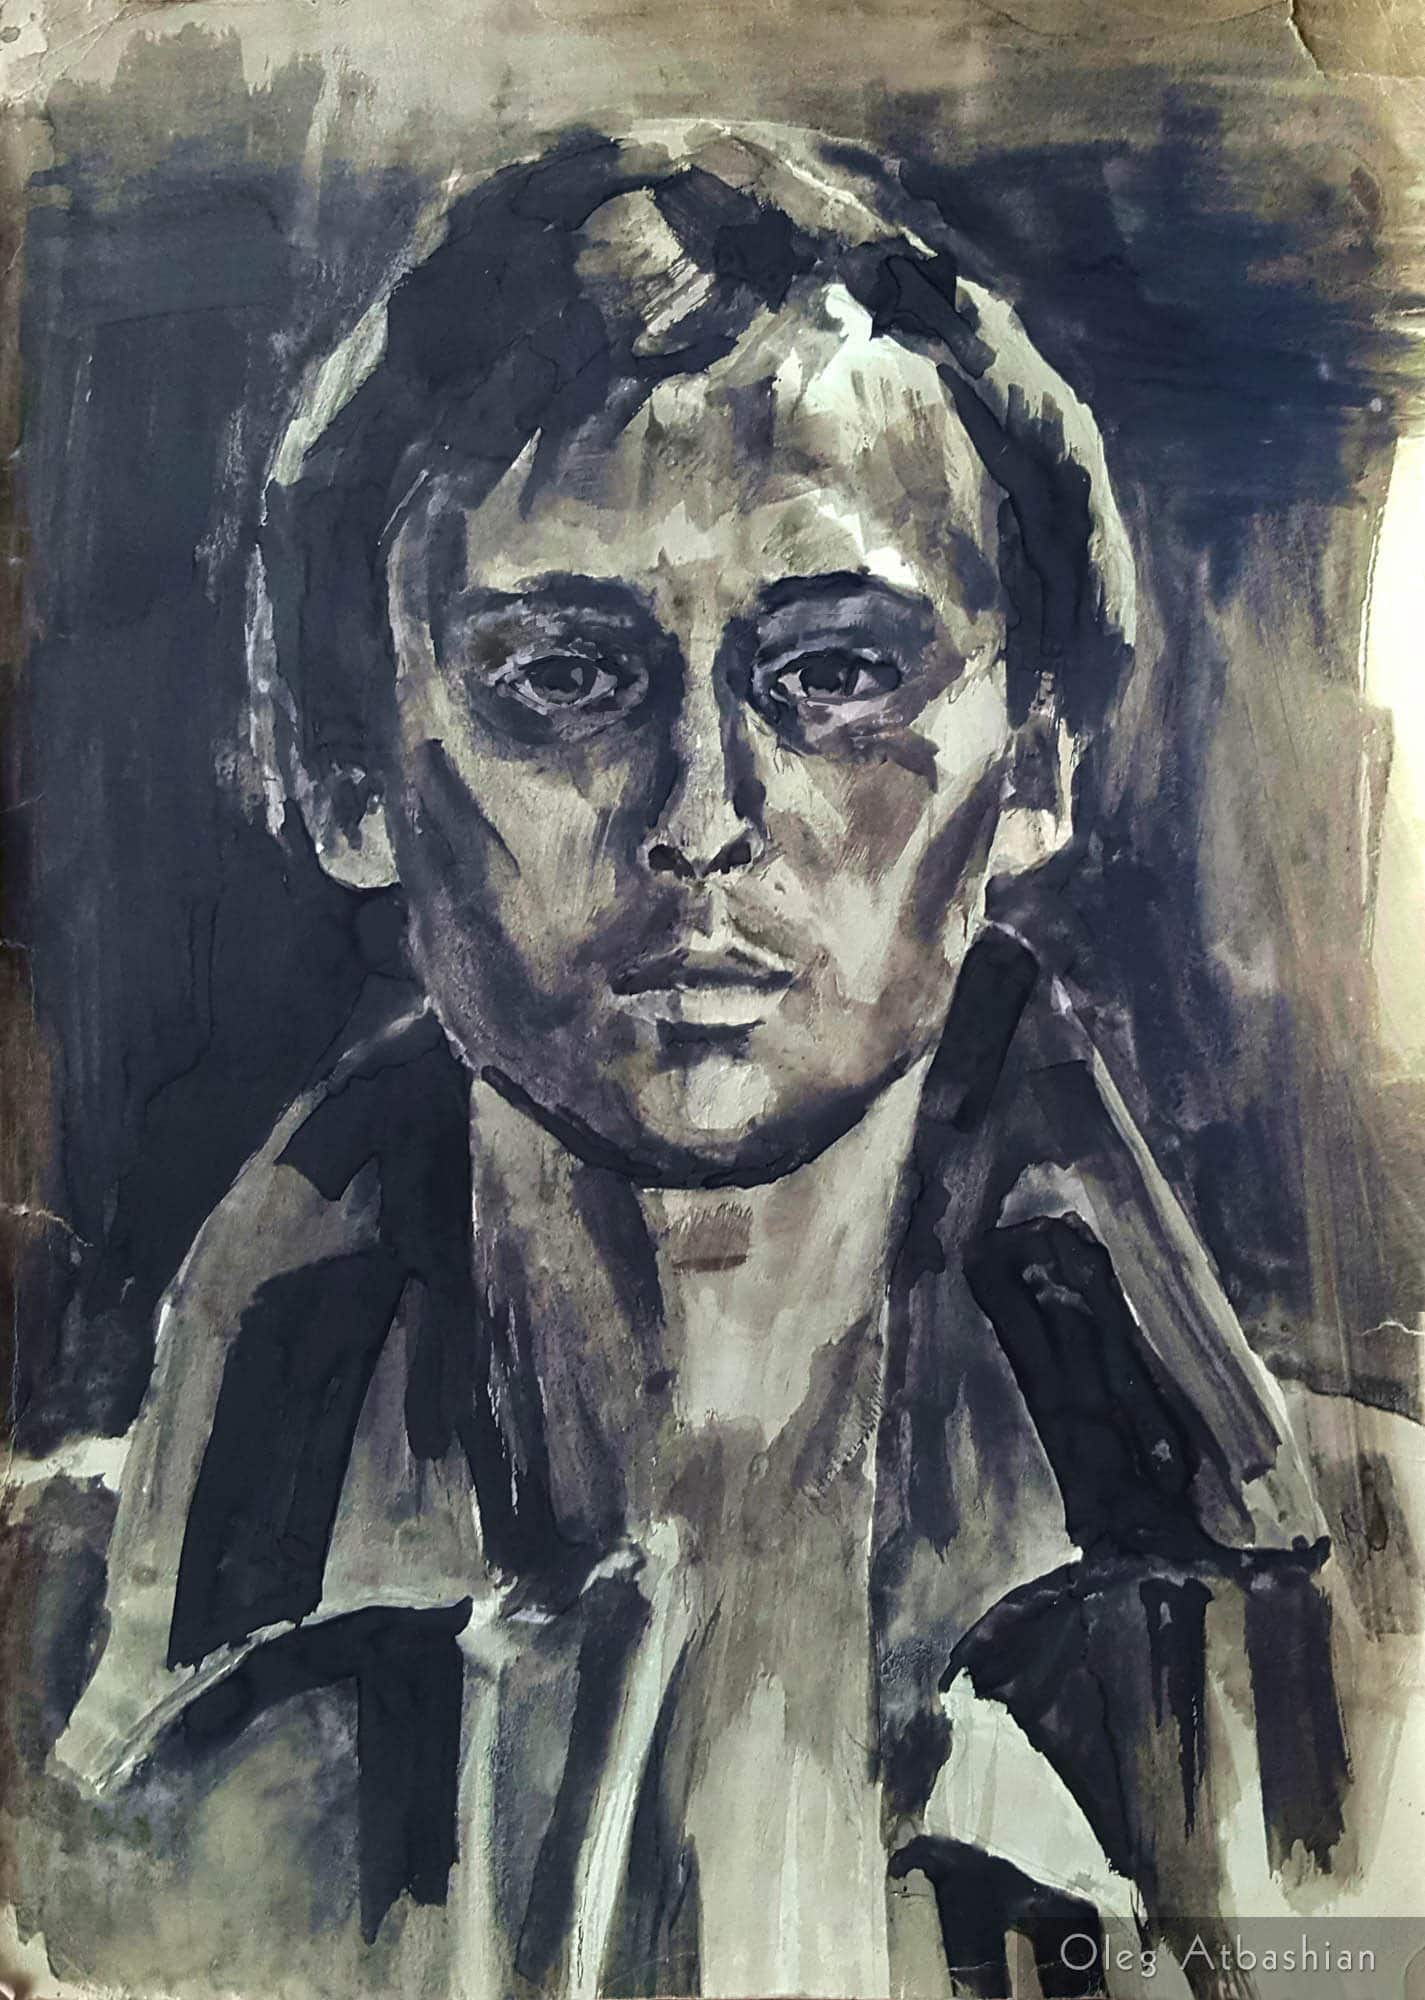 Self Portrait as a Conscript into the Soviet Army